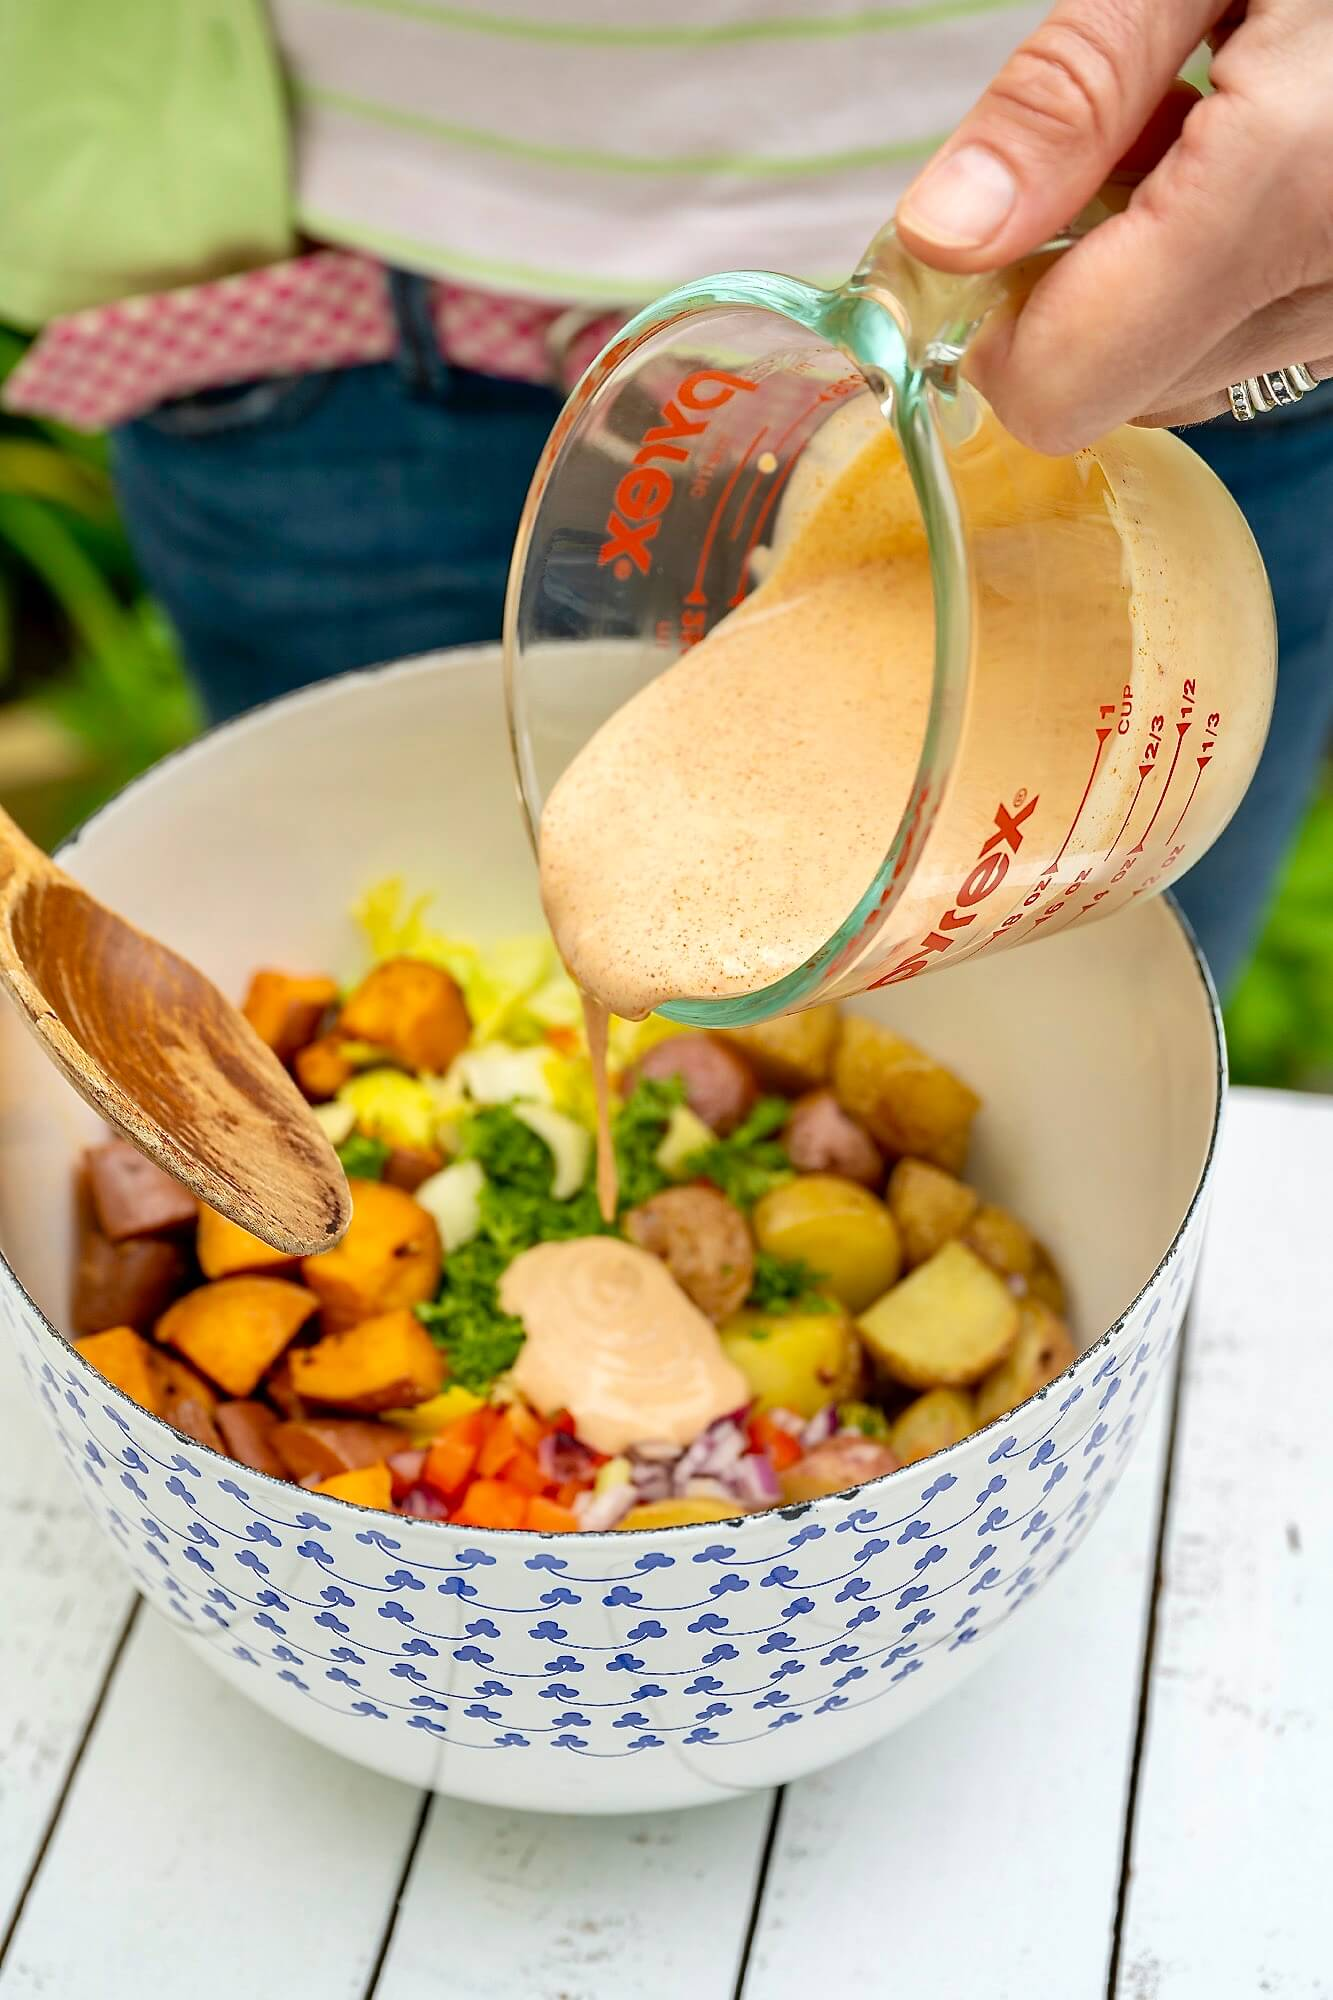 No need to peel the potatoes in this customizable salad, which uses a unique dressing that can be made in advance.